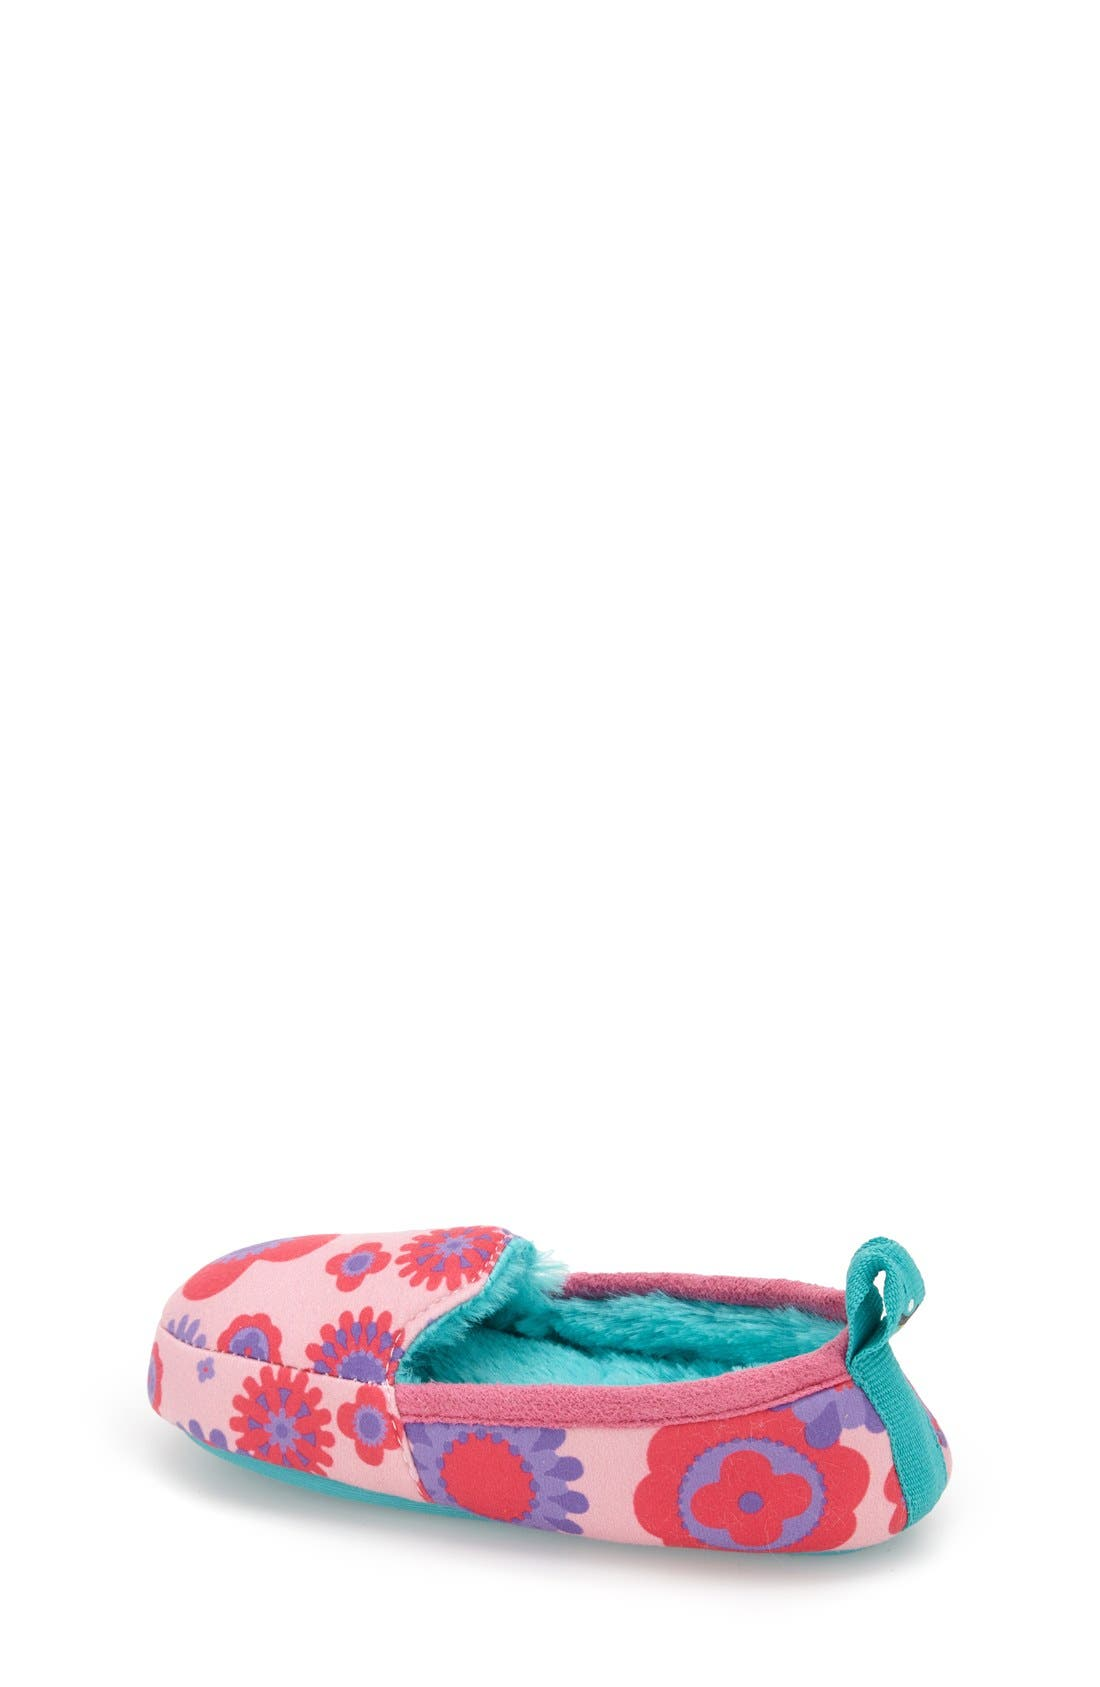 'Slumber' Slippers,                             Alternate thumbnail 65, color,